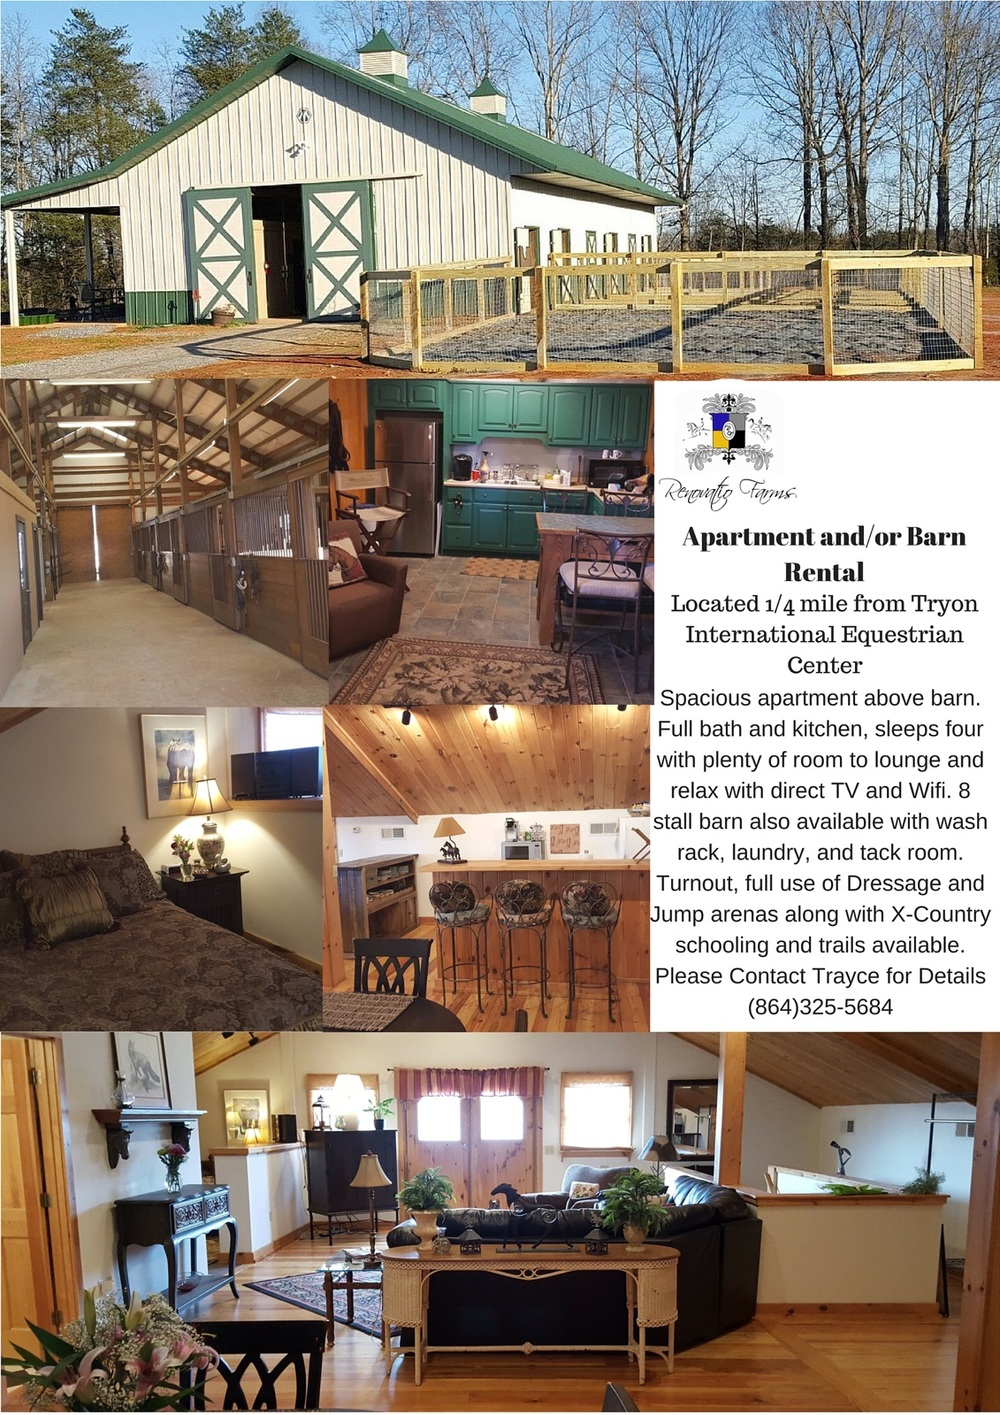 Apartment/Barn Rental — Renovatio Farm | Equestrian | Horse Boarding ...